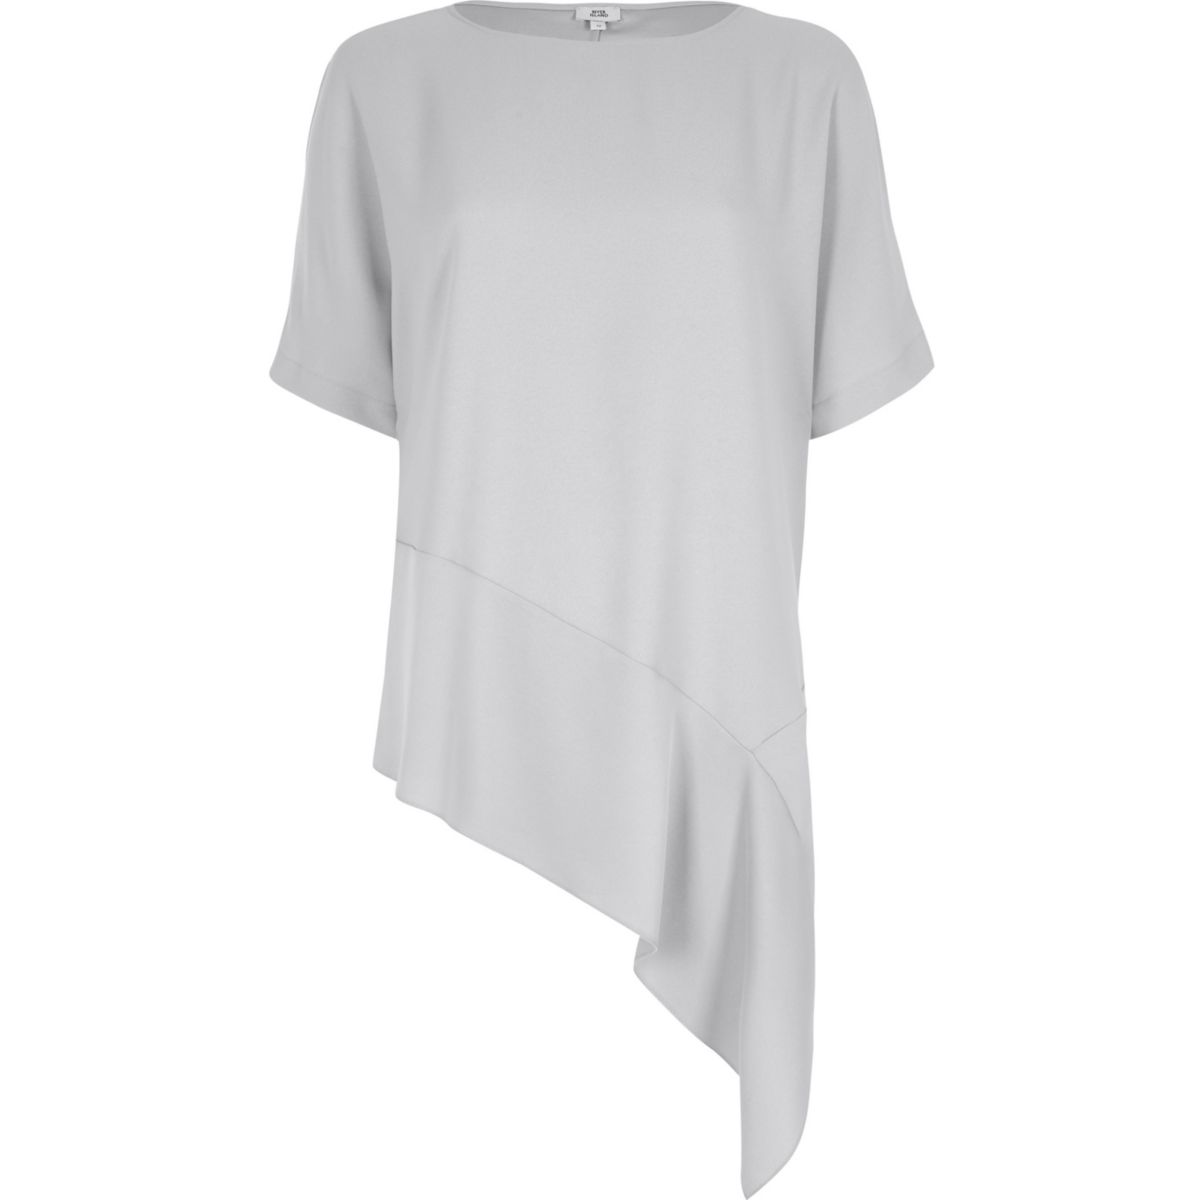 Light grey asymmetric hem T-shirt